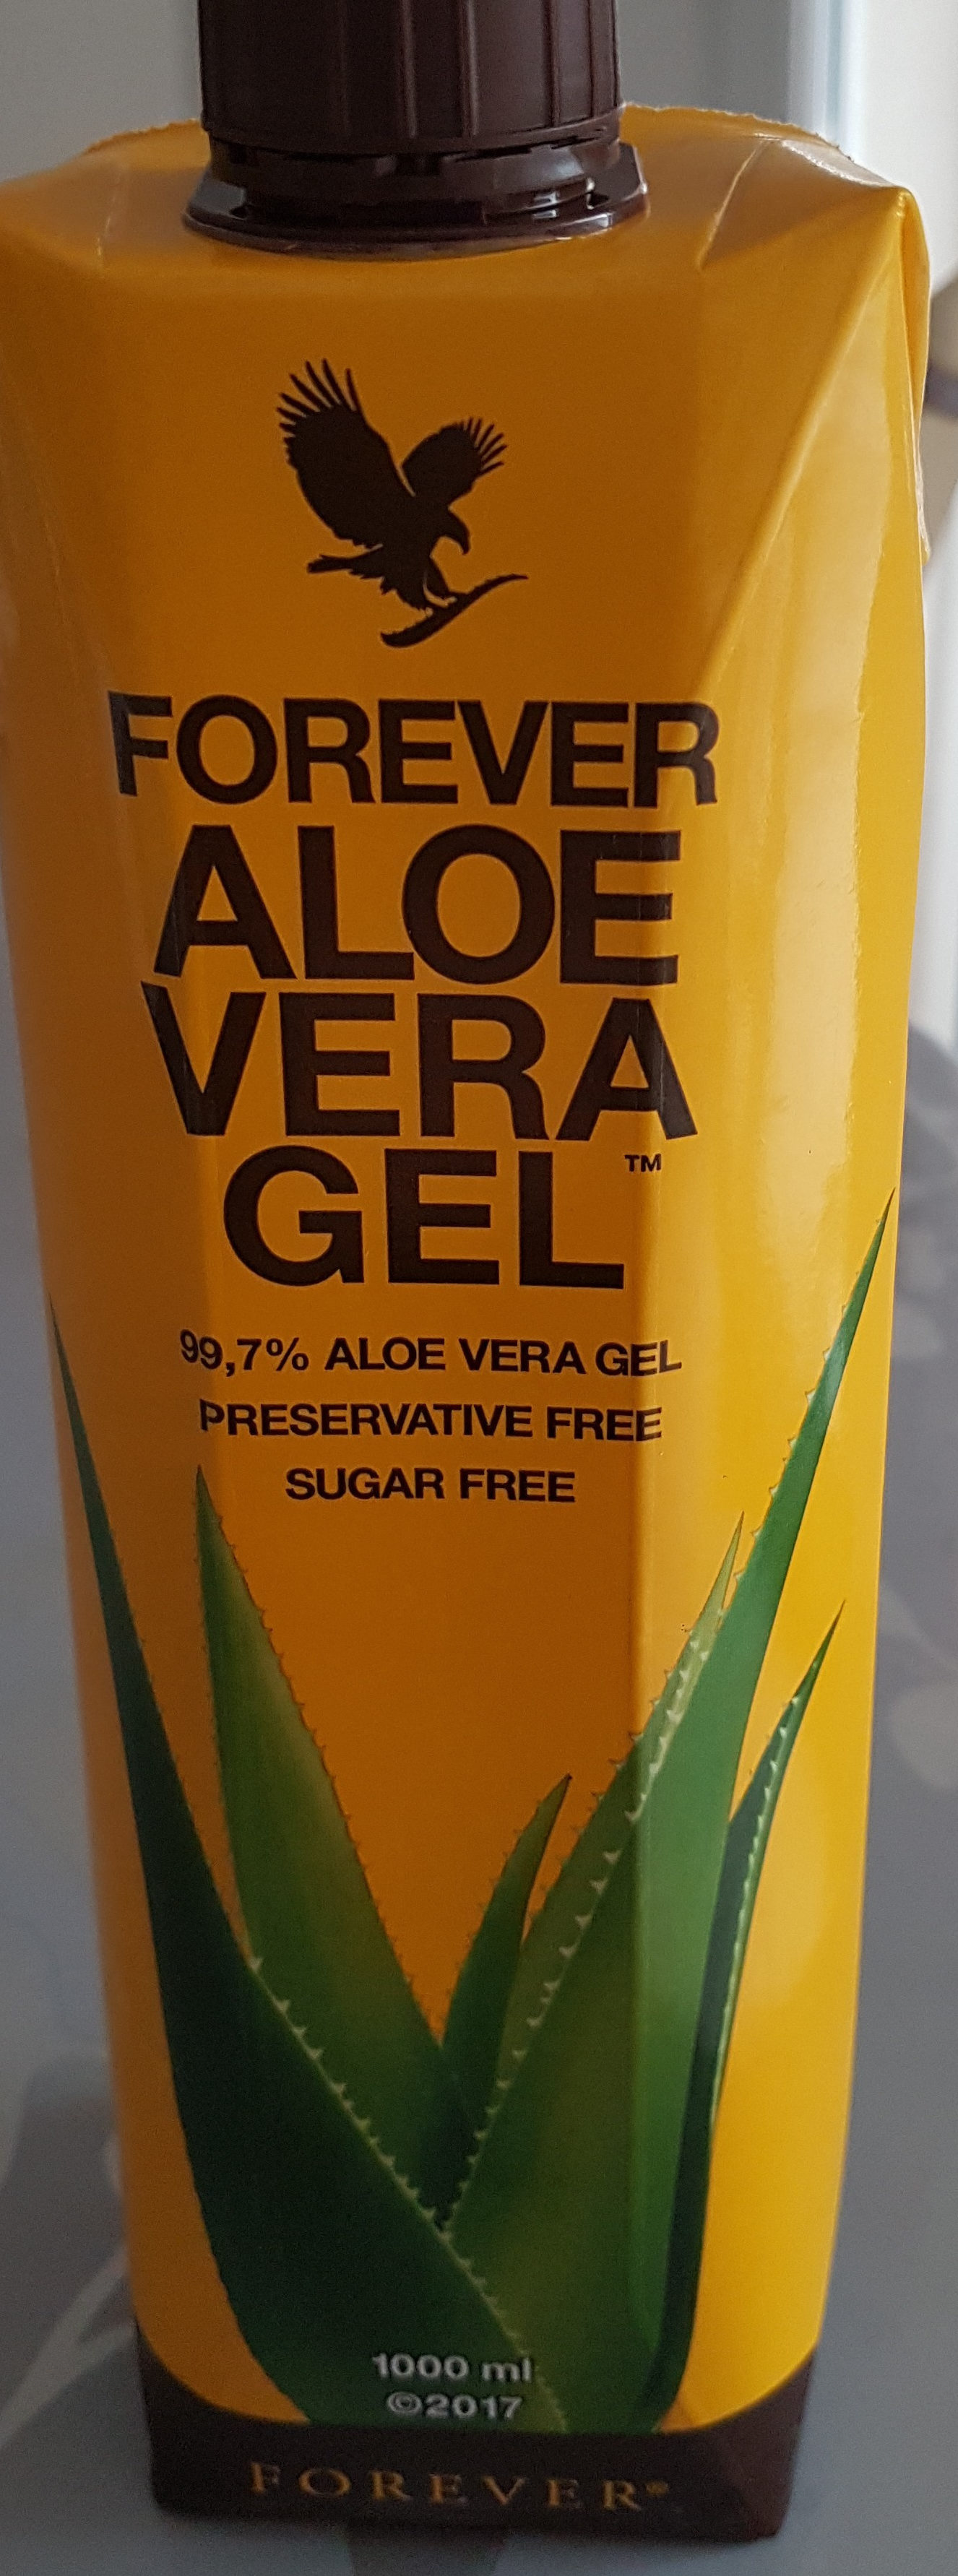 cfcffa3c6a6 Aloe vera gel - Forever Living Products - 1000 ml